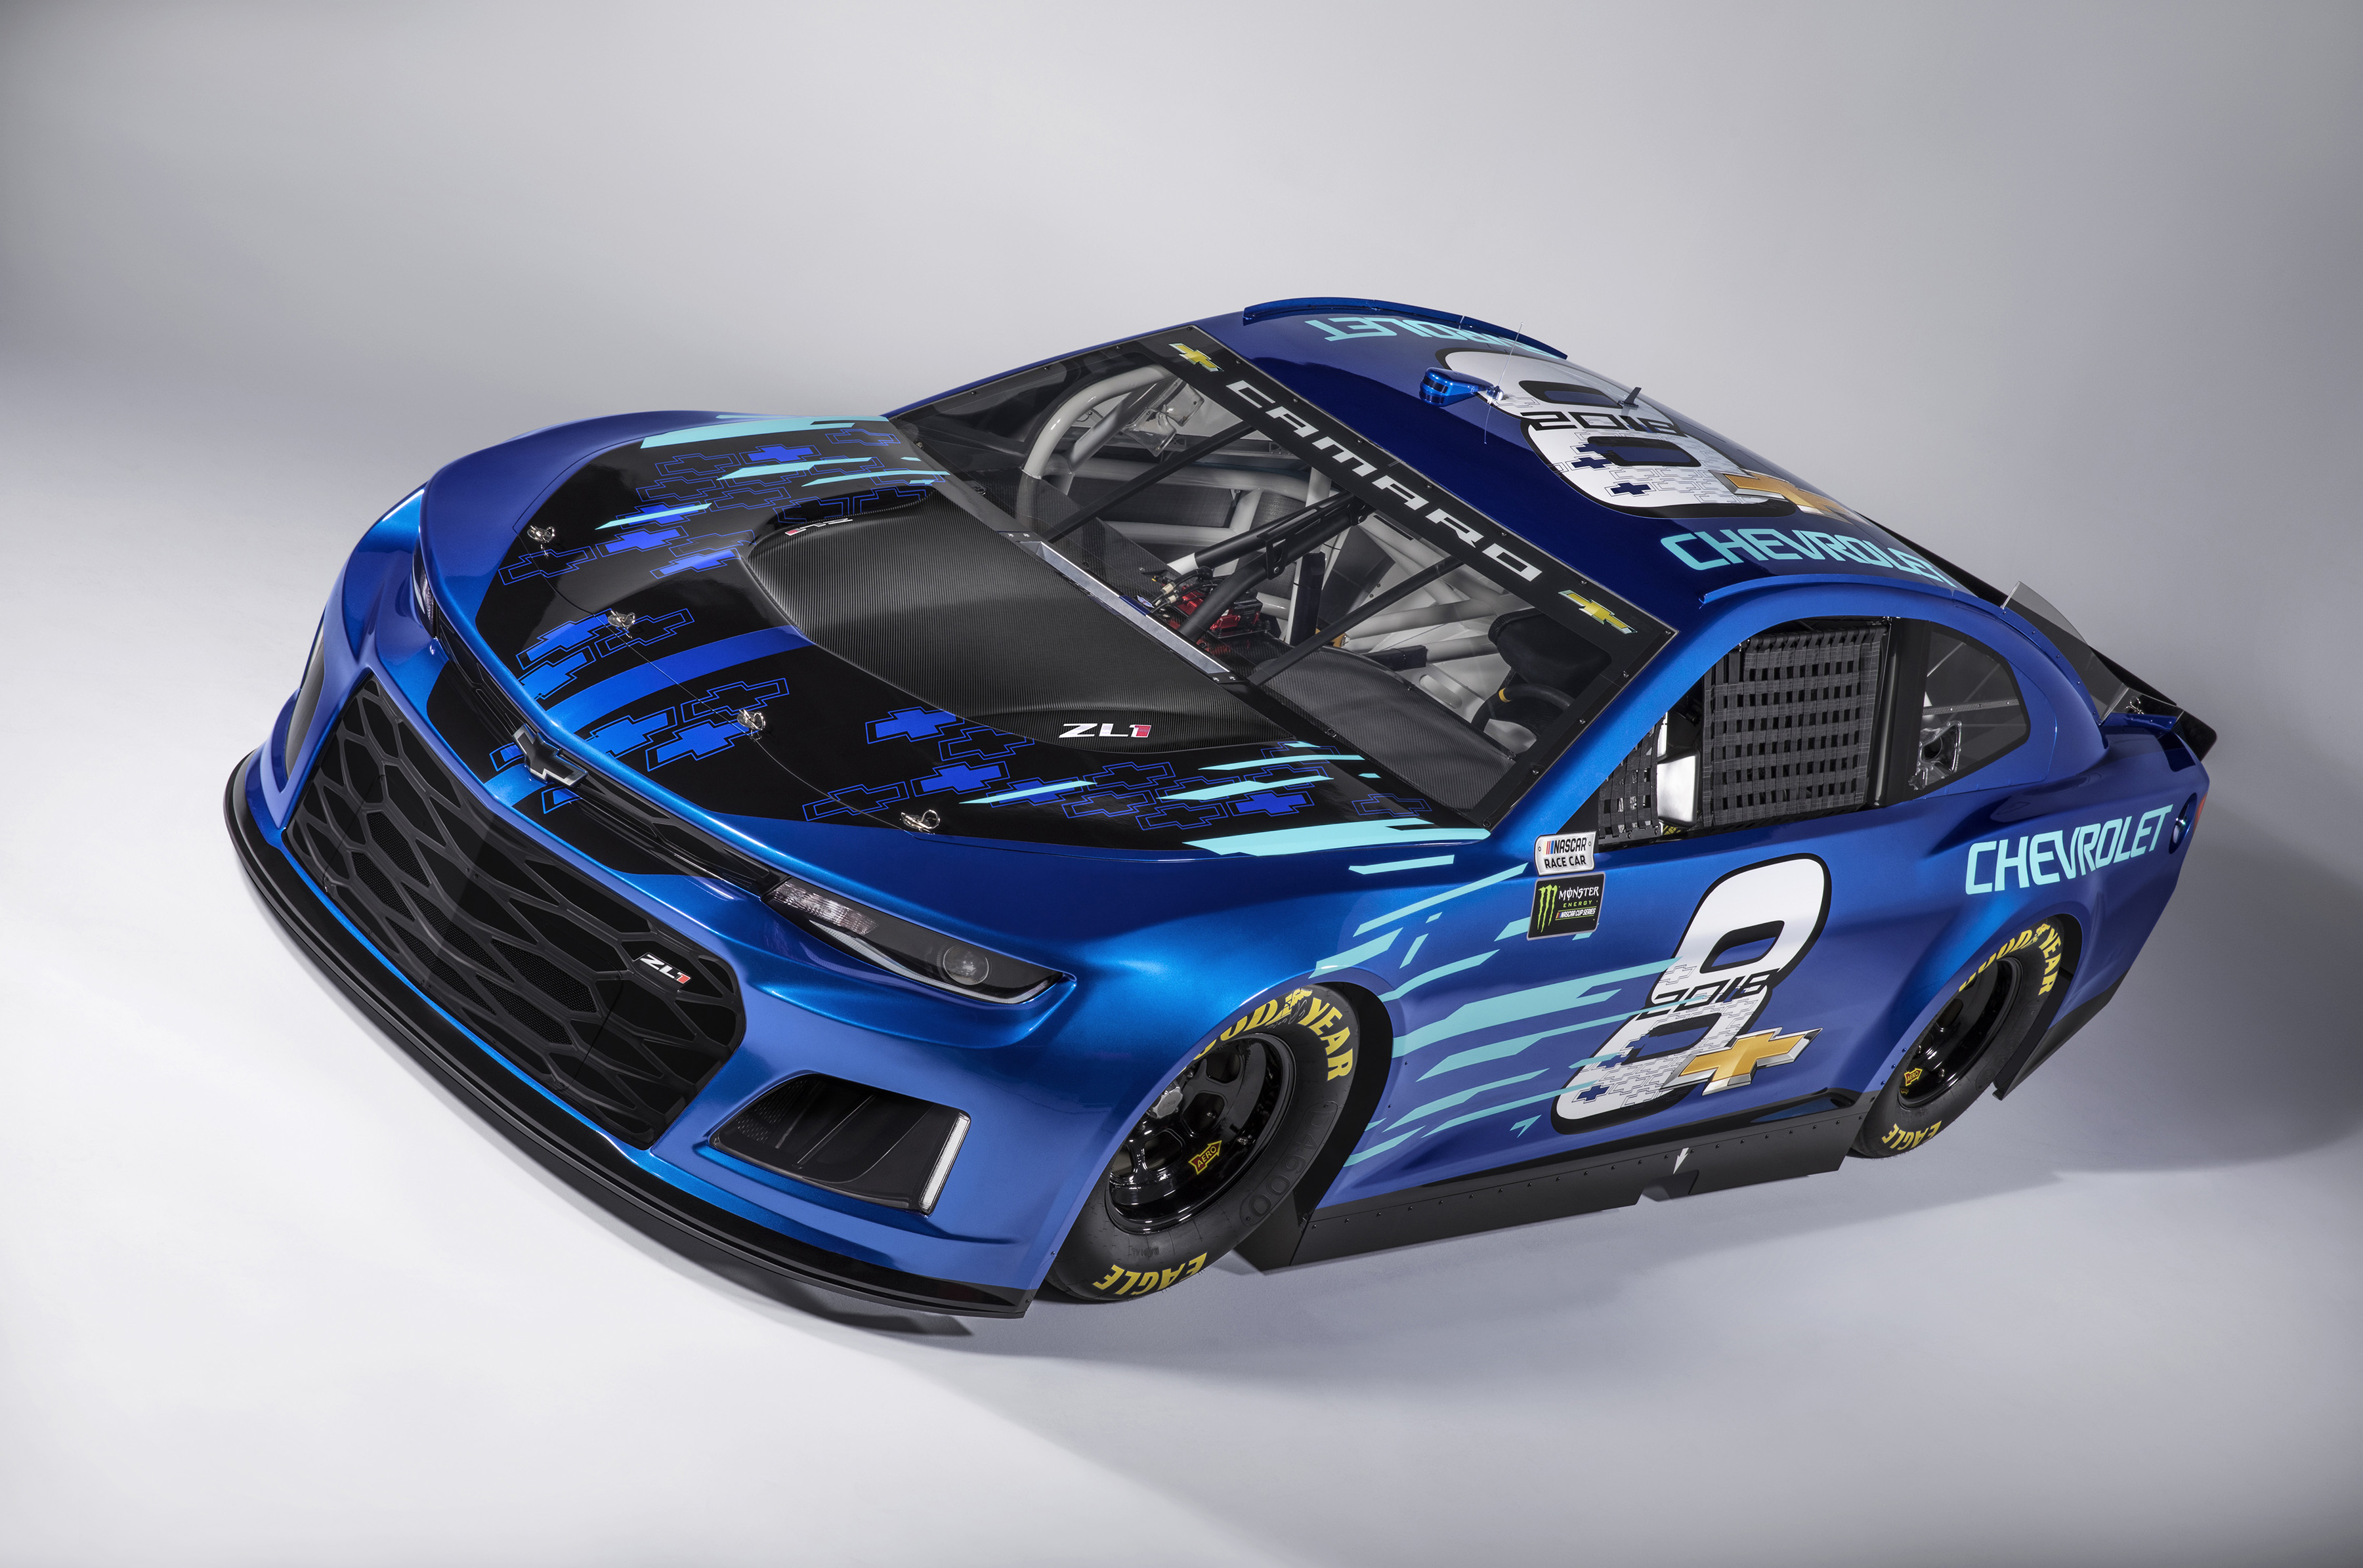 The Chevy Camaro ZL1 Is Coming to NASCAR - The Drive